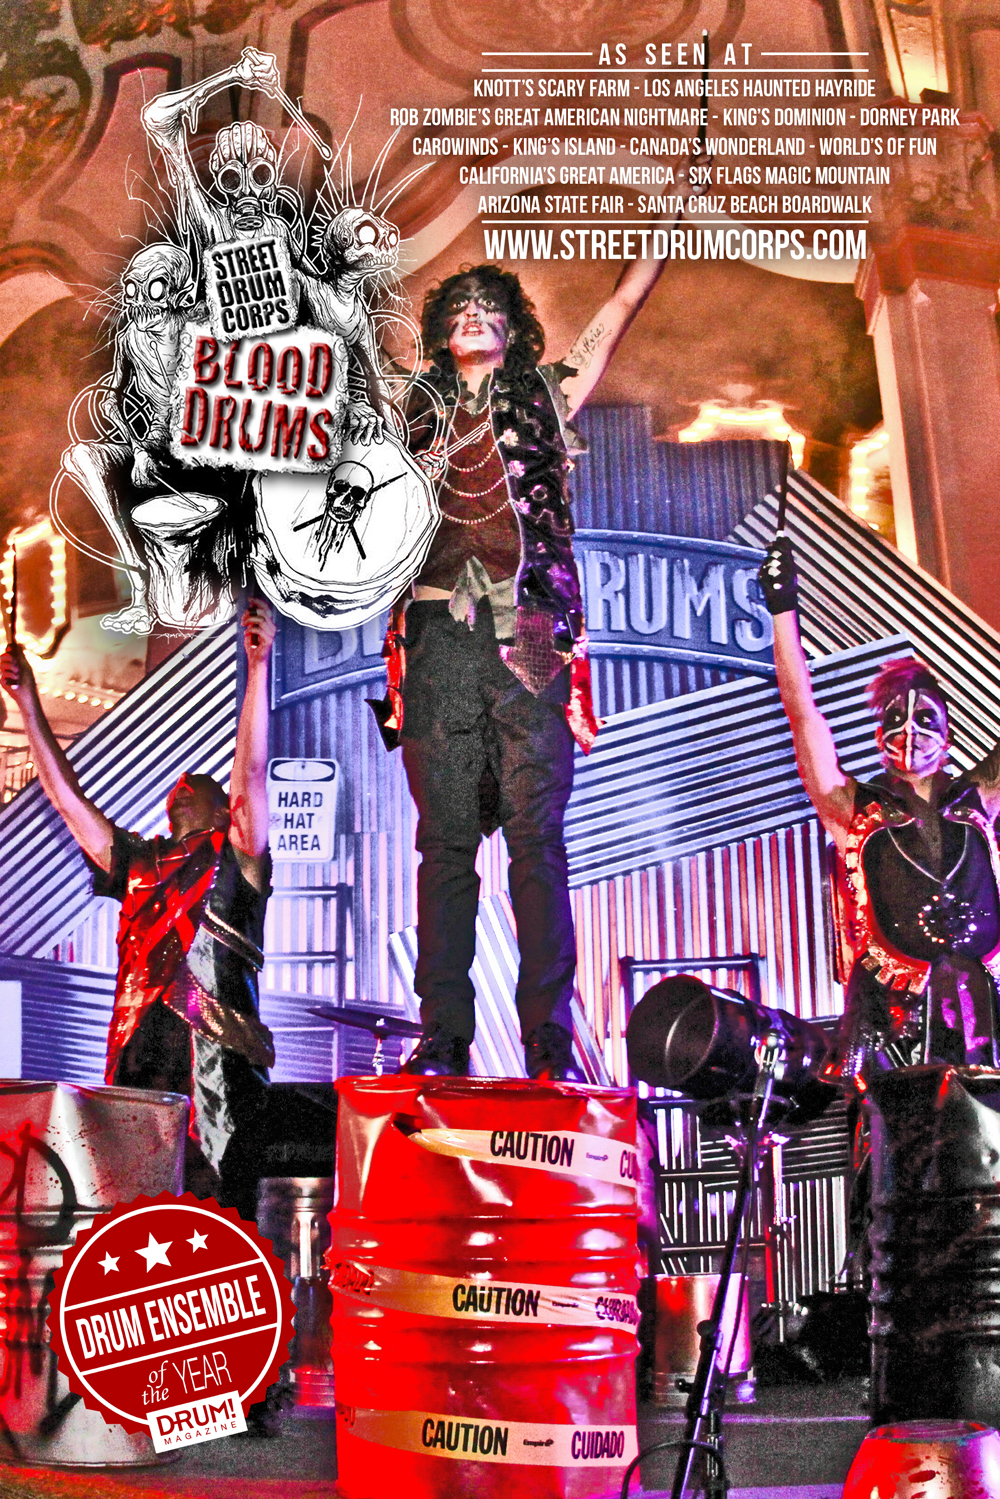 Blood Drums Promo.jpg